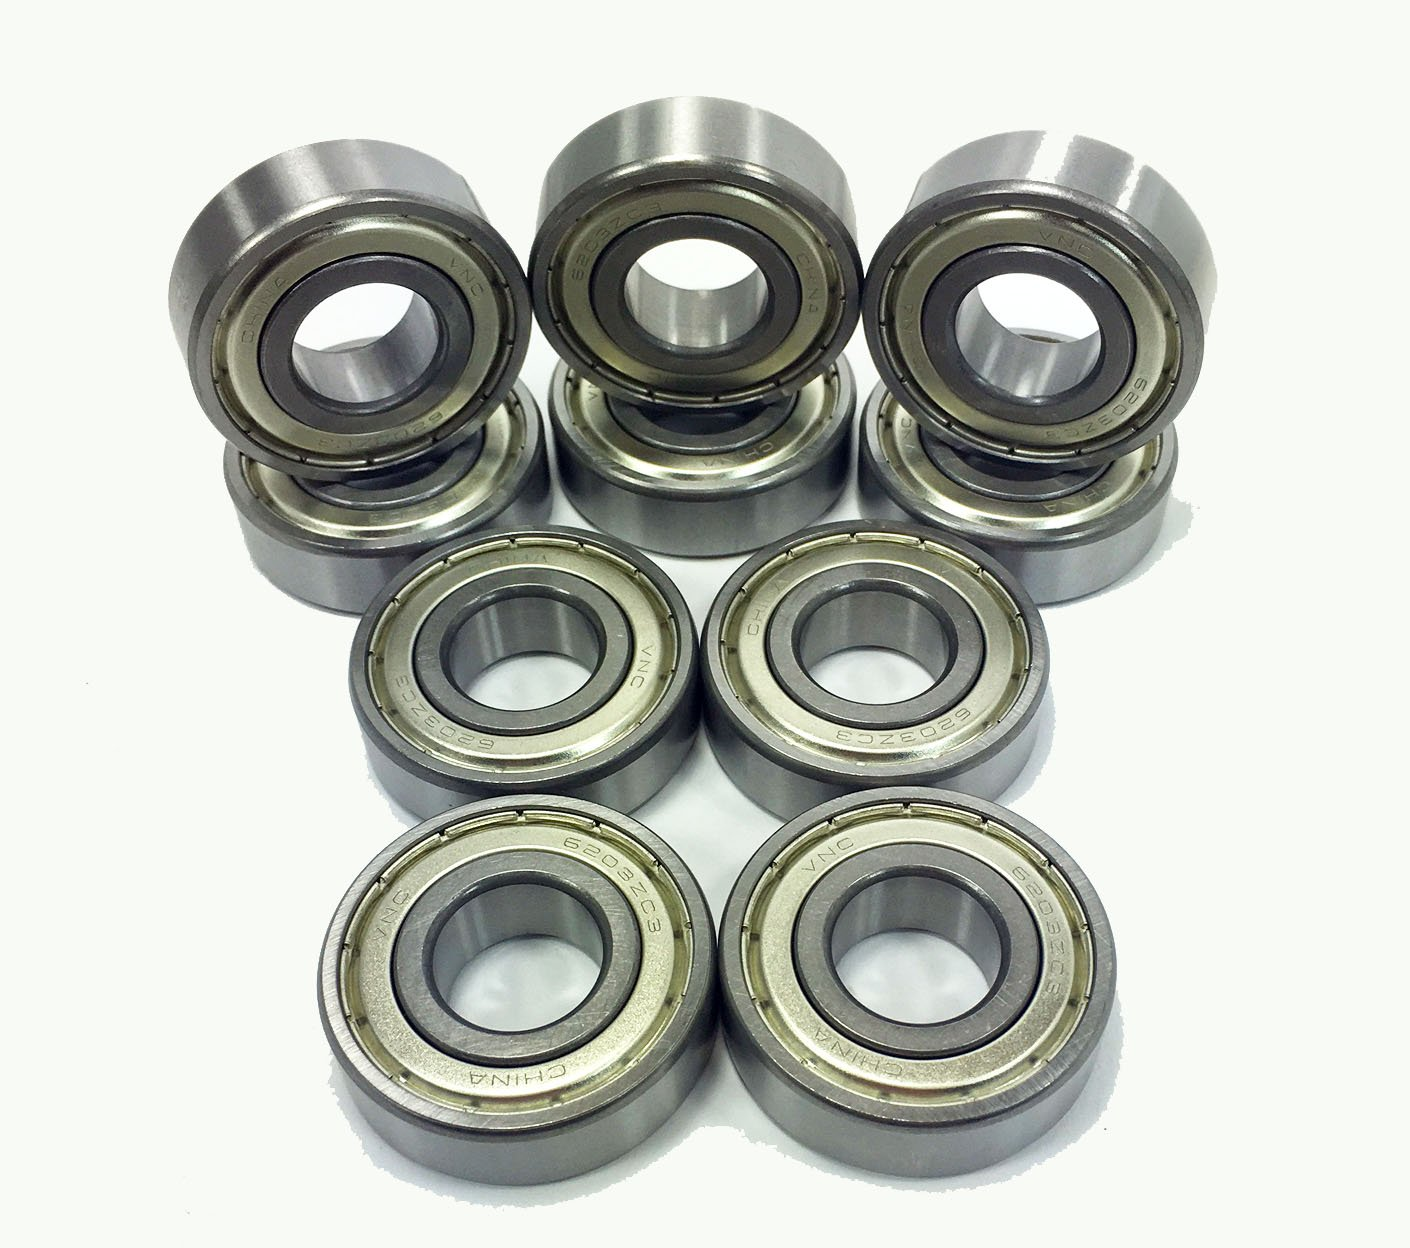 6205-ZZ Shielded Radial Ball Bearing 25X52X15 10 pack